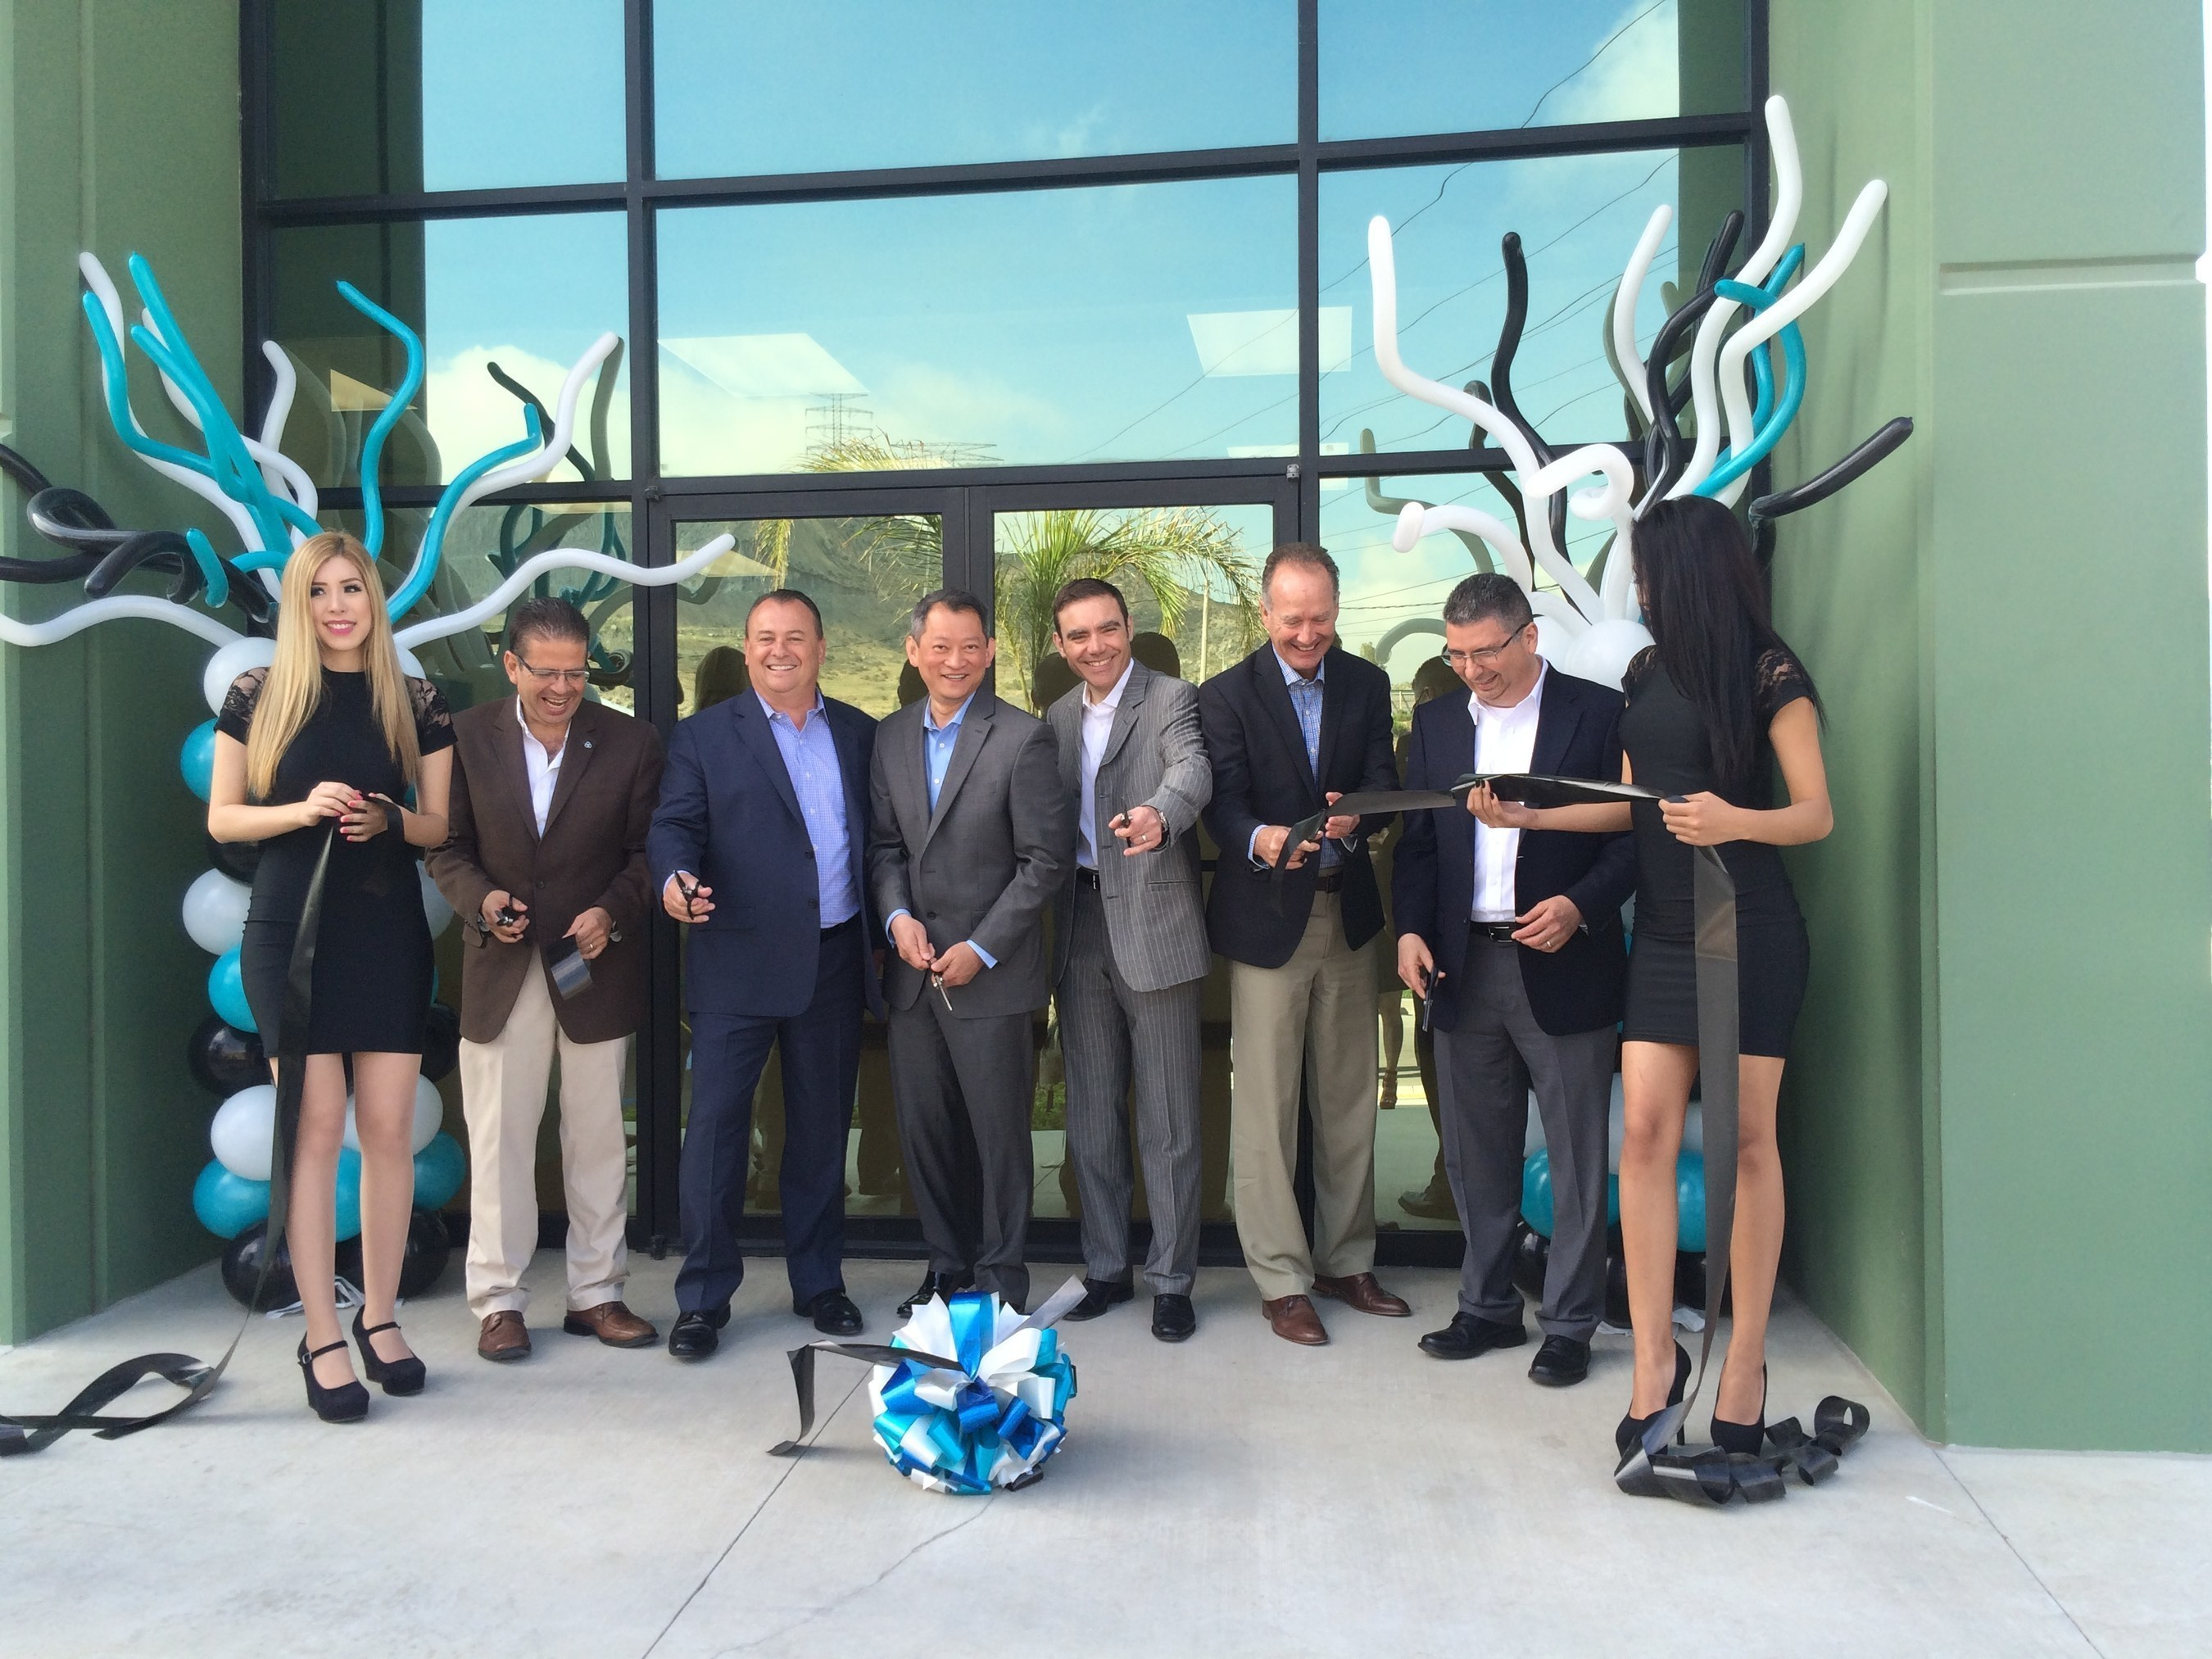 Ribbon cutting at the new Dynacast facility in Tijuana, Mexico